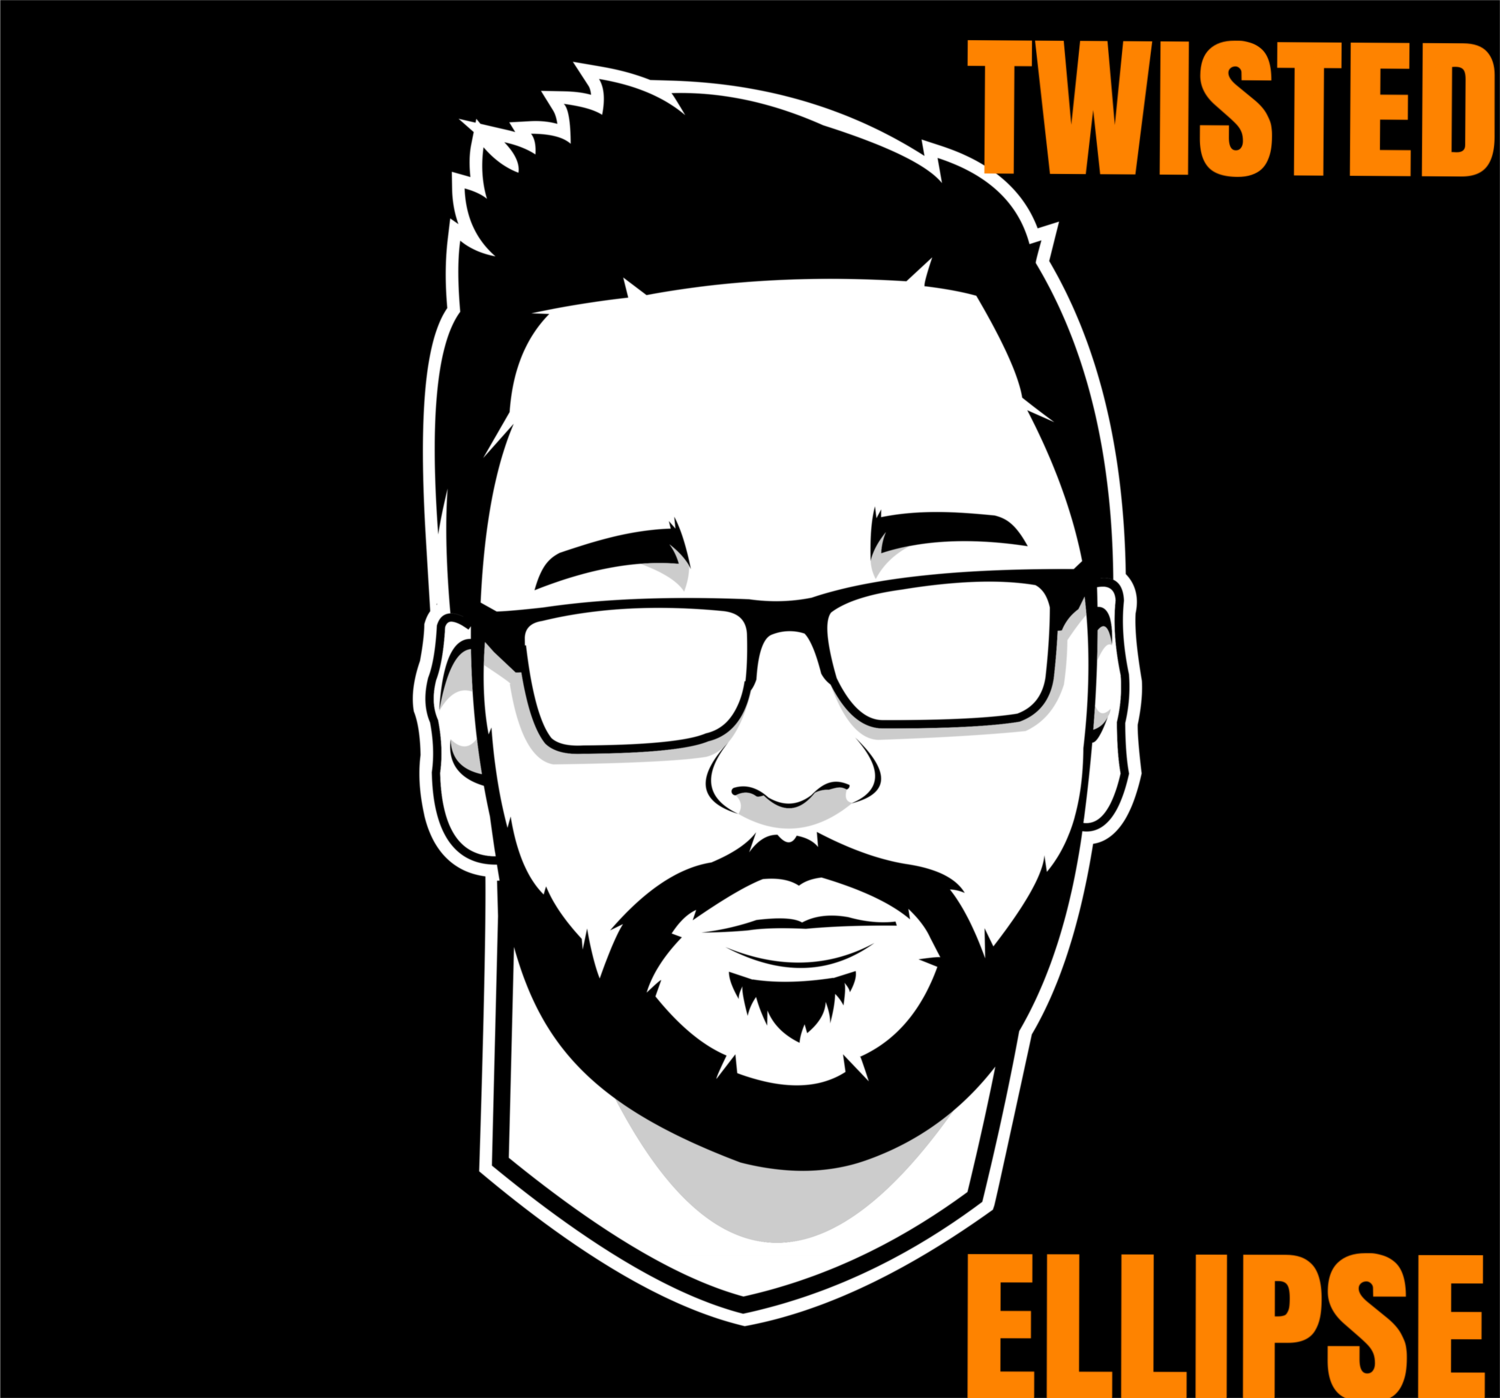 Twisted Ellipse